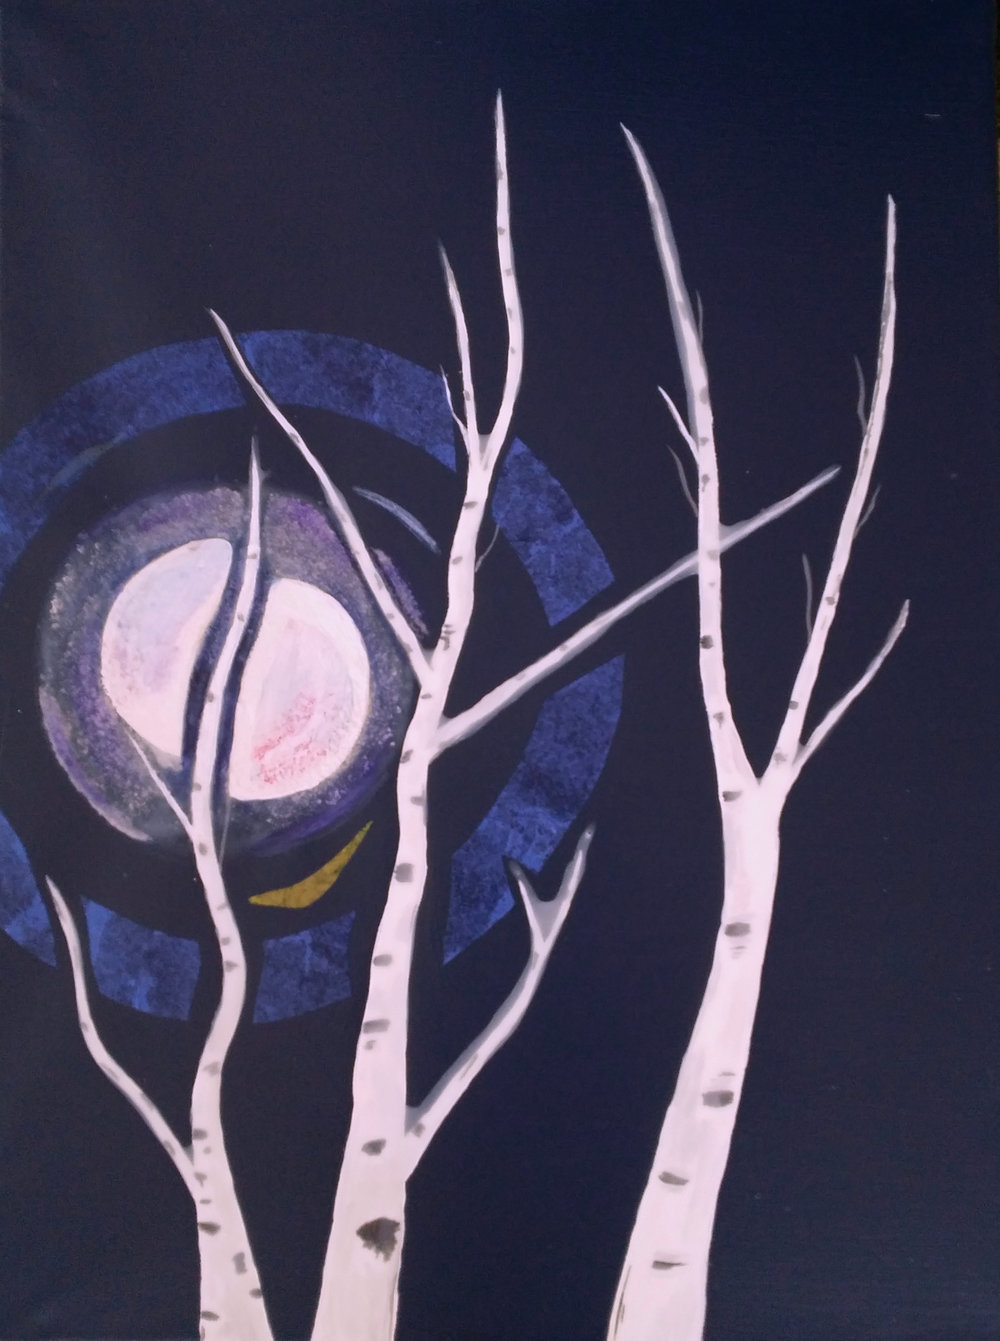 birch tree and the blood blue moon.jpg